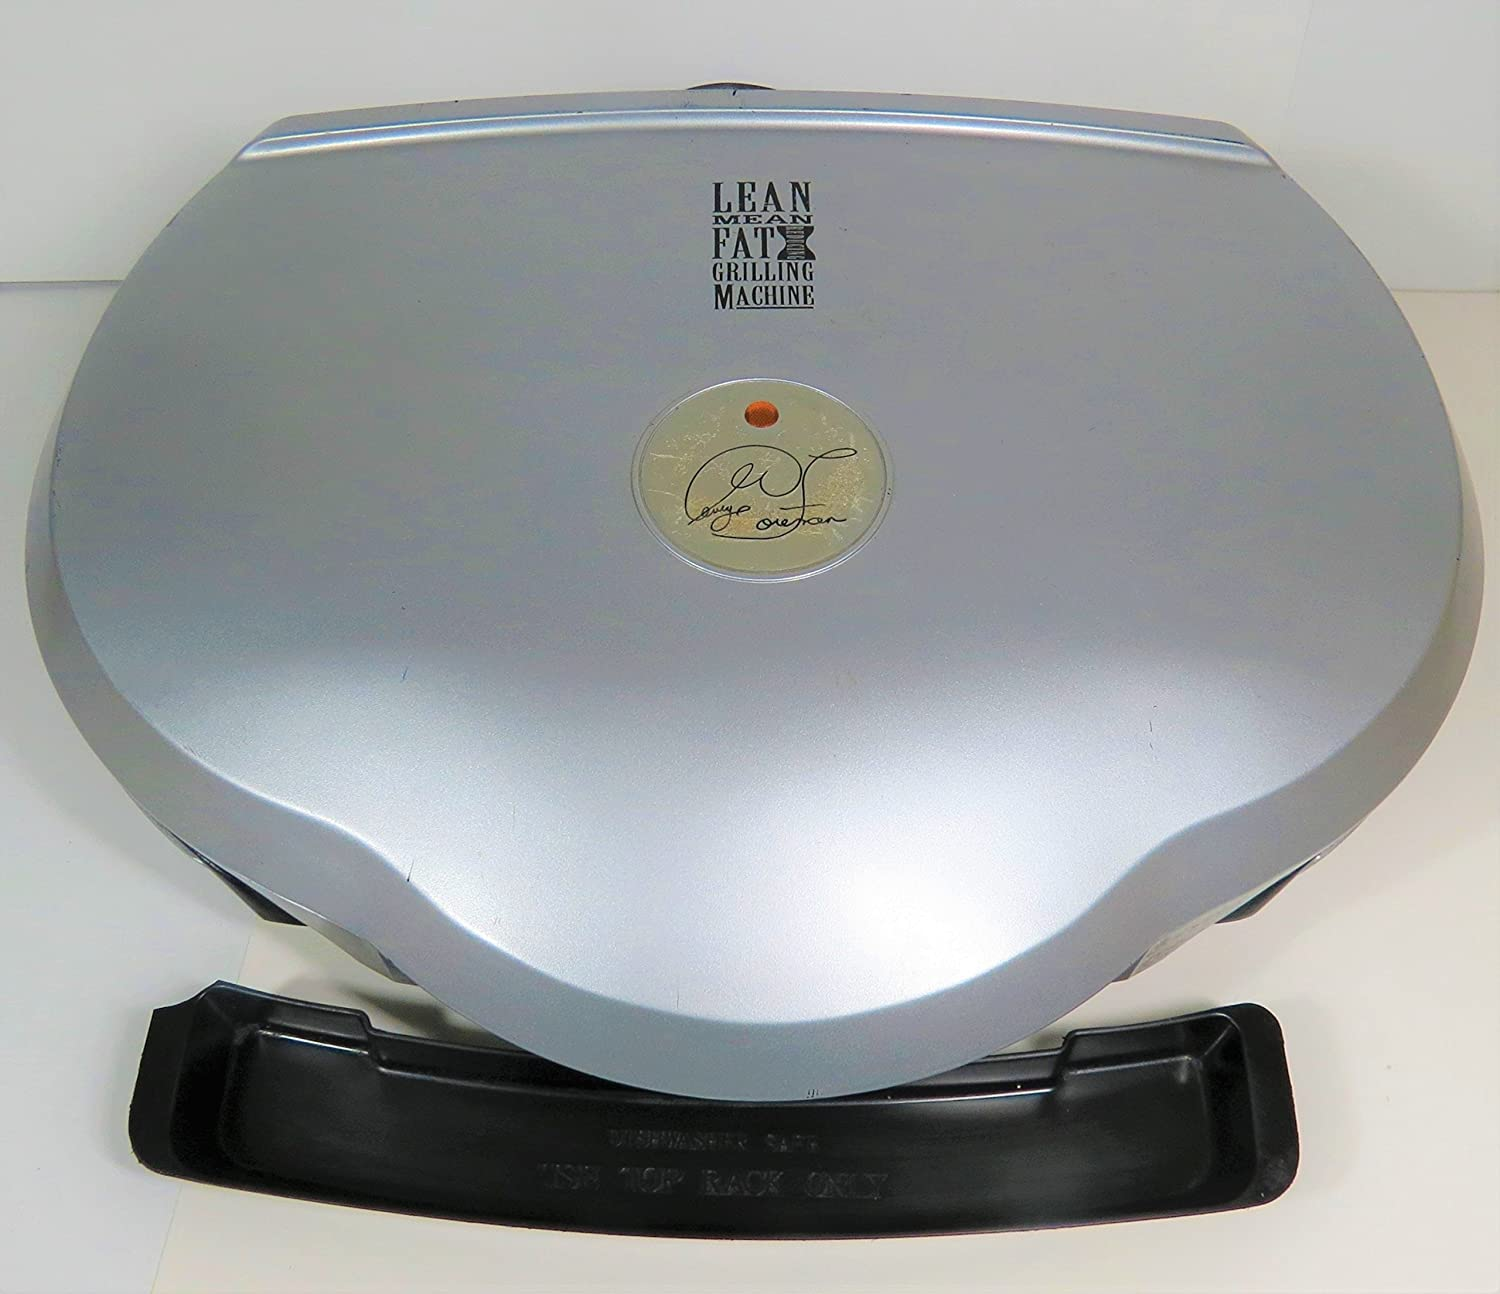 GEORGE FOREMAN LEAN MEAN FAT GRILLING MACHINE - Family Jumbo Size Electric Grilling Machine GR35PQ